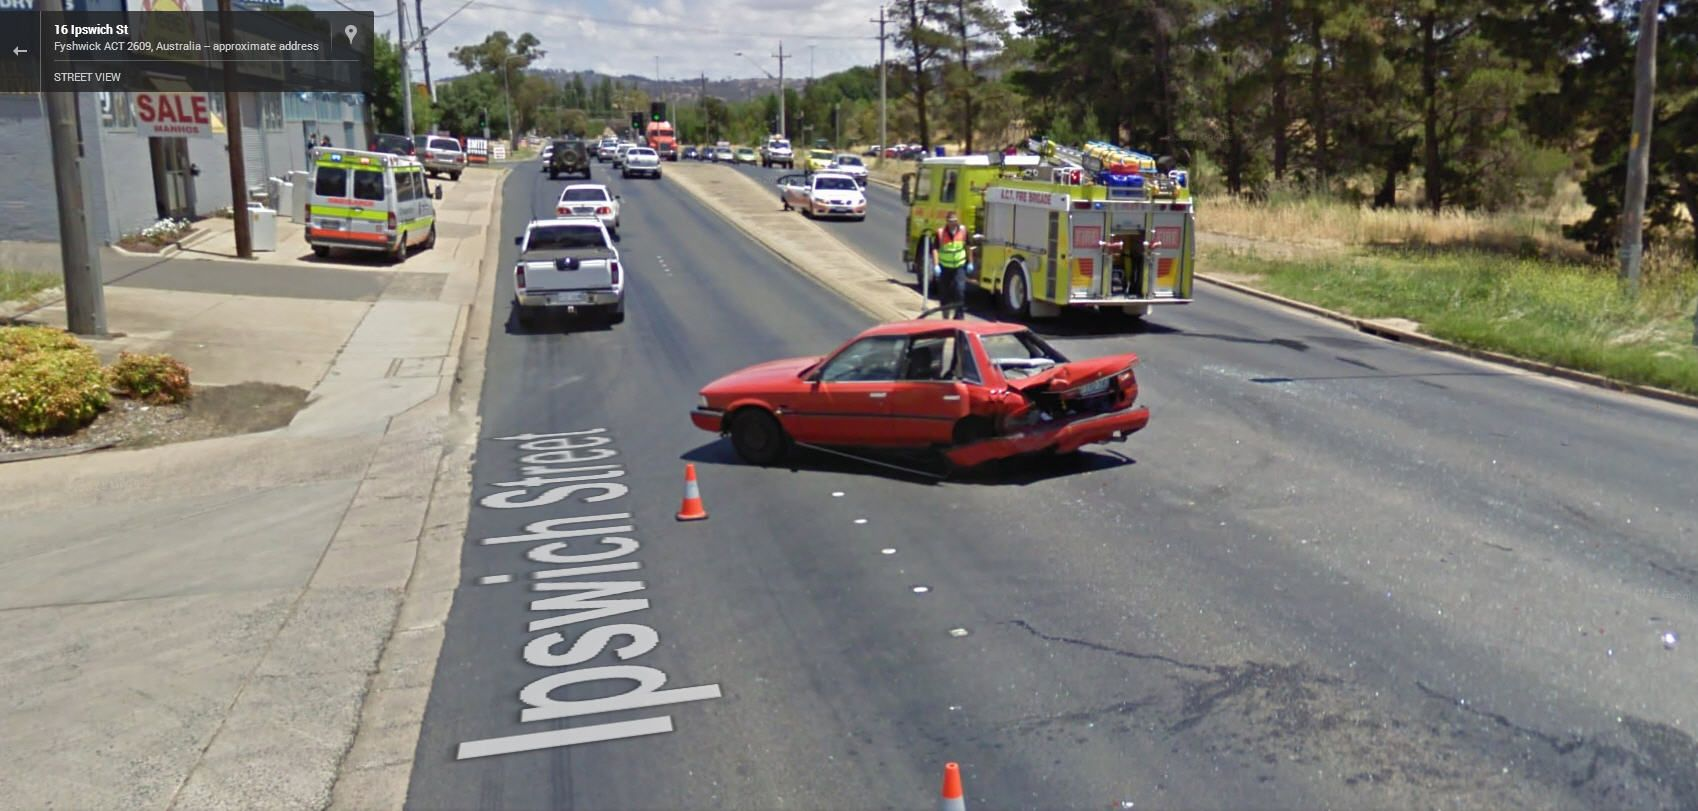 http://google-street-view.com/another-australian-accident-captured-by-google-street-view/